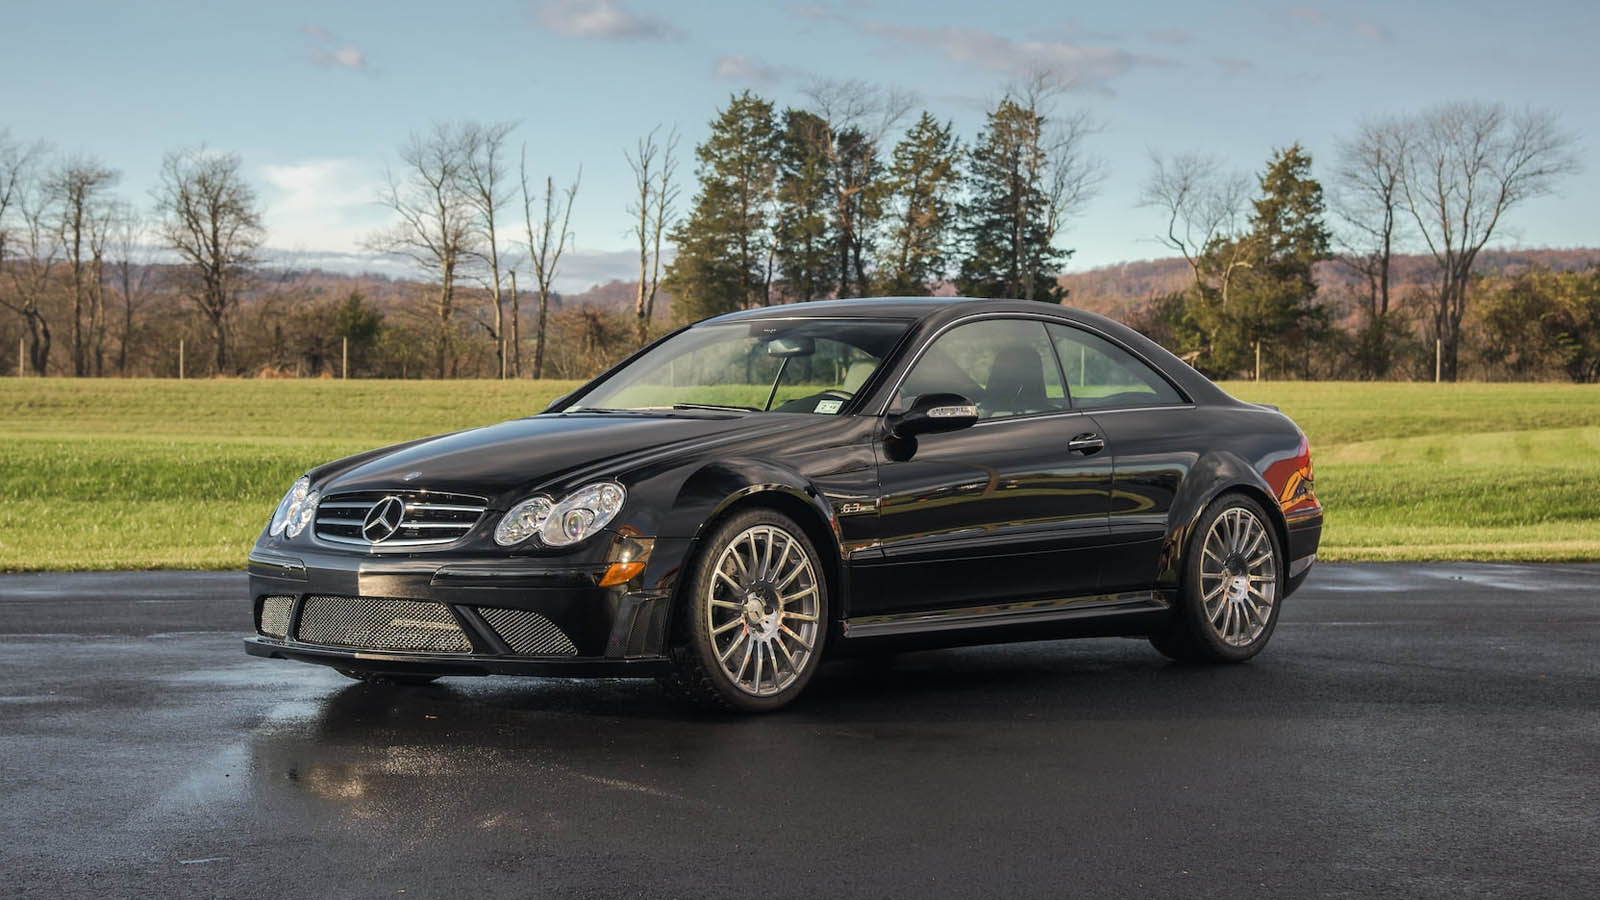 2012 C63 Amg For Sale >> Merc AMG Black Series Collection Up For Sale In Florida